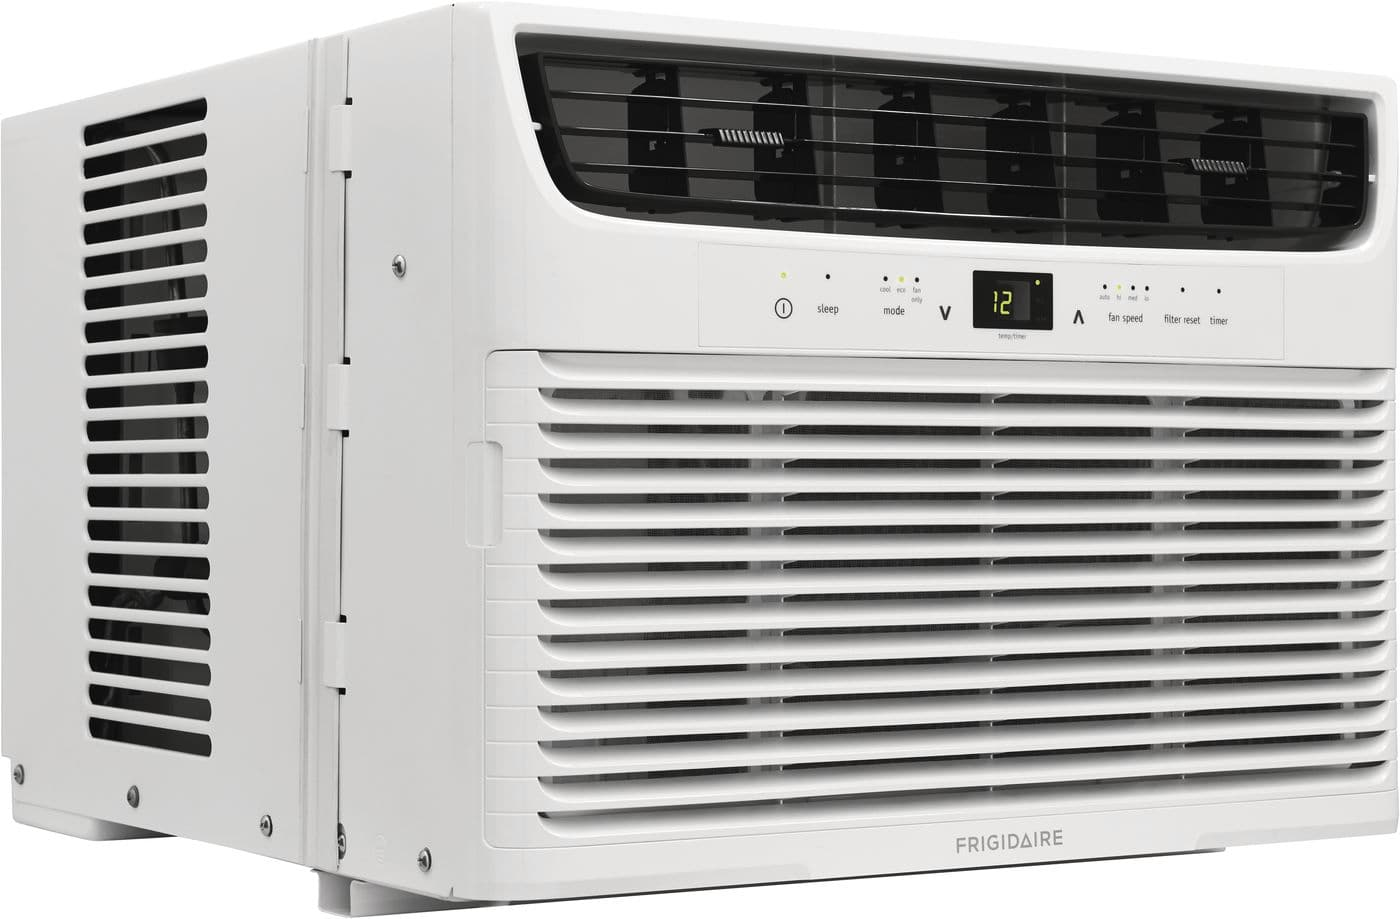 Model: FFRA102ZA1 | Frigidaire 10,000 BTU Window-Mounted Room Air Conditioner